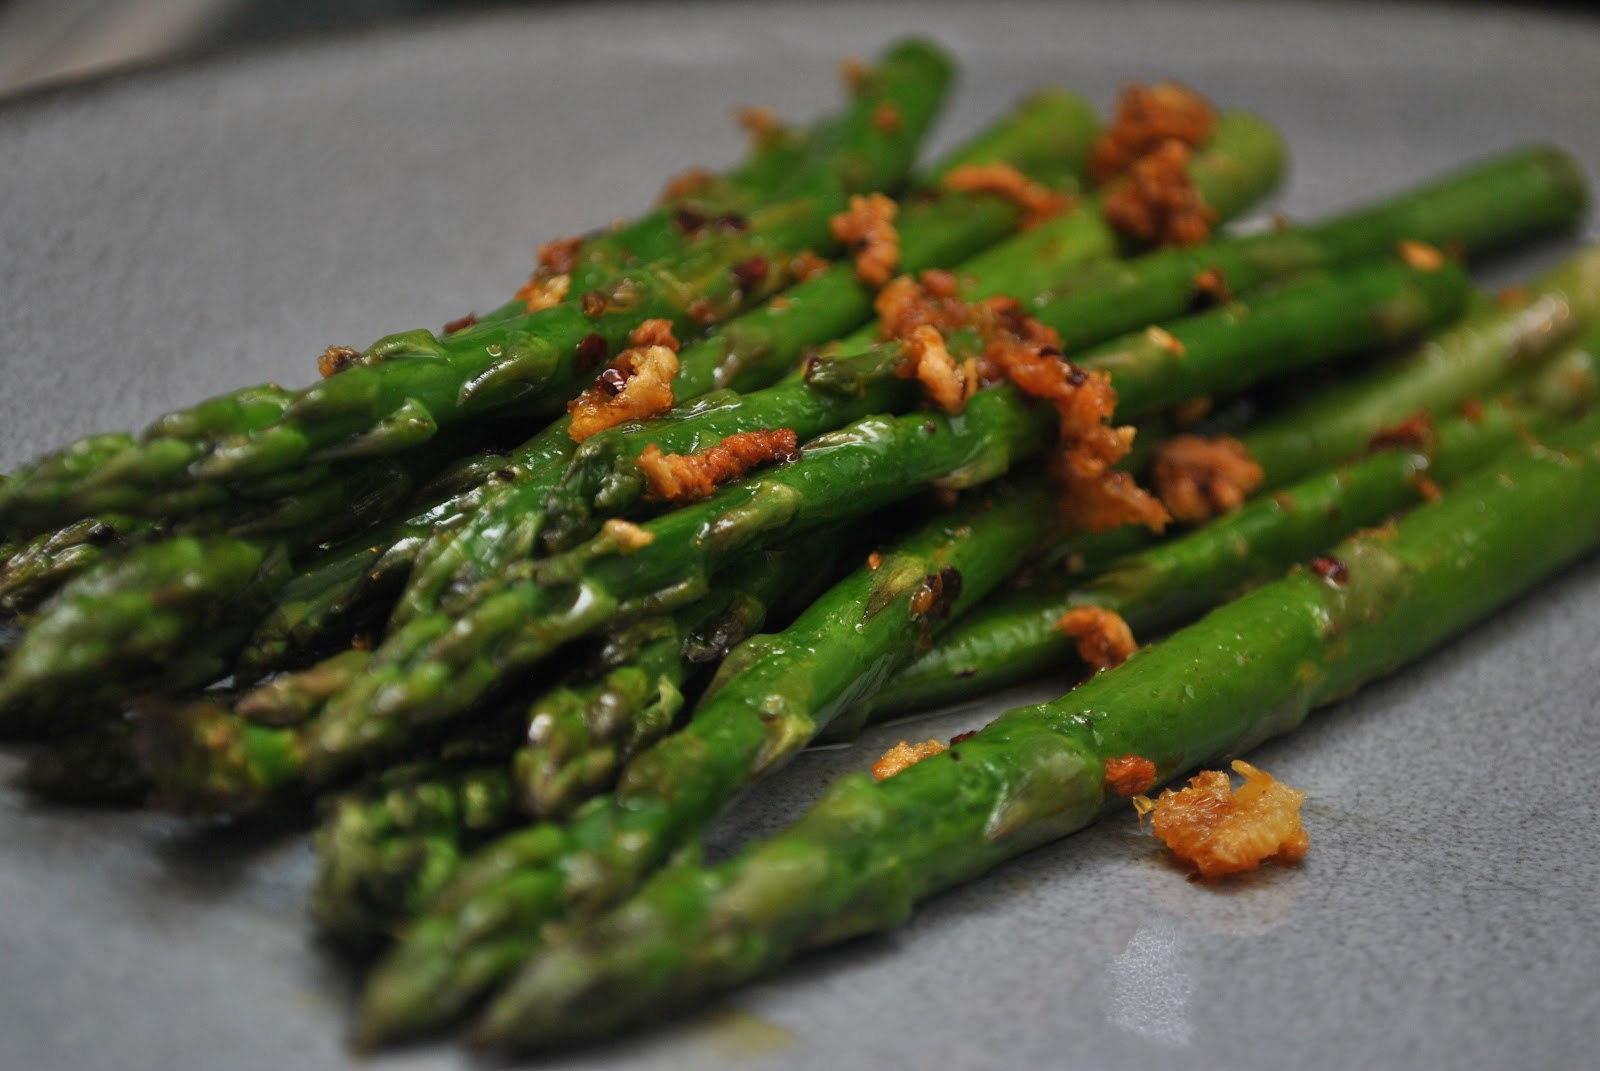 My Table, Their Table: Lemon-garlic Asparagus